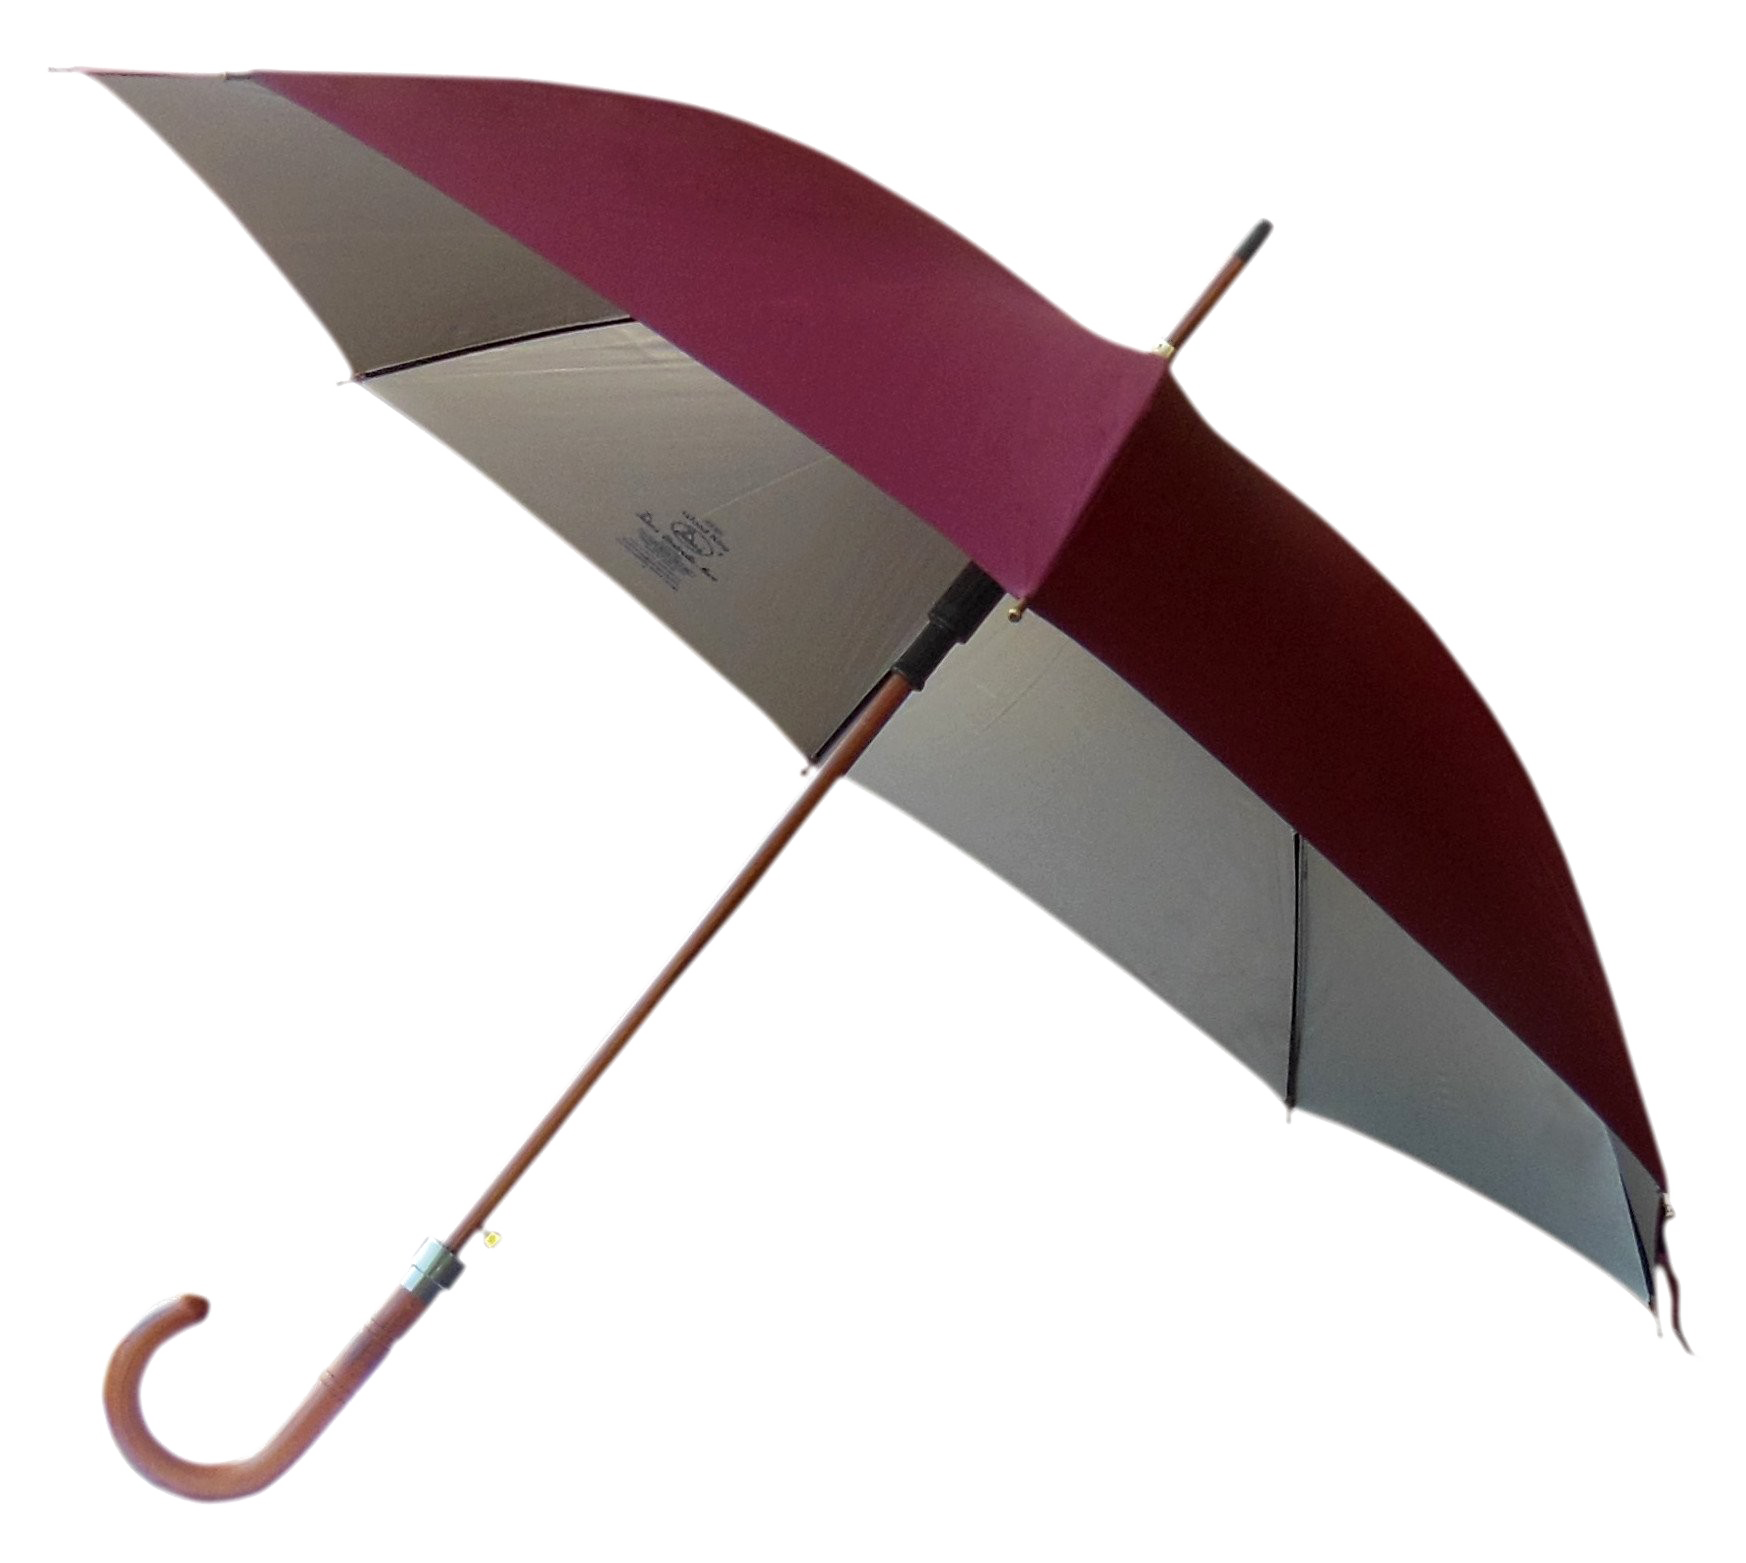 Umbrella image arts. Png images with transparent background